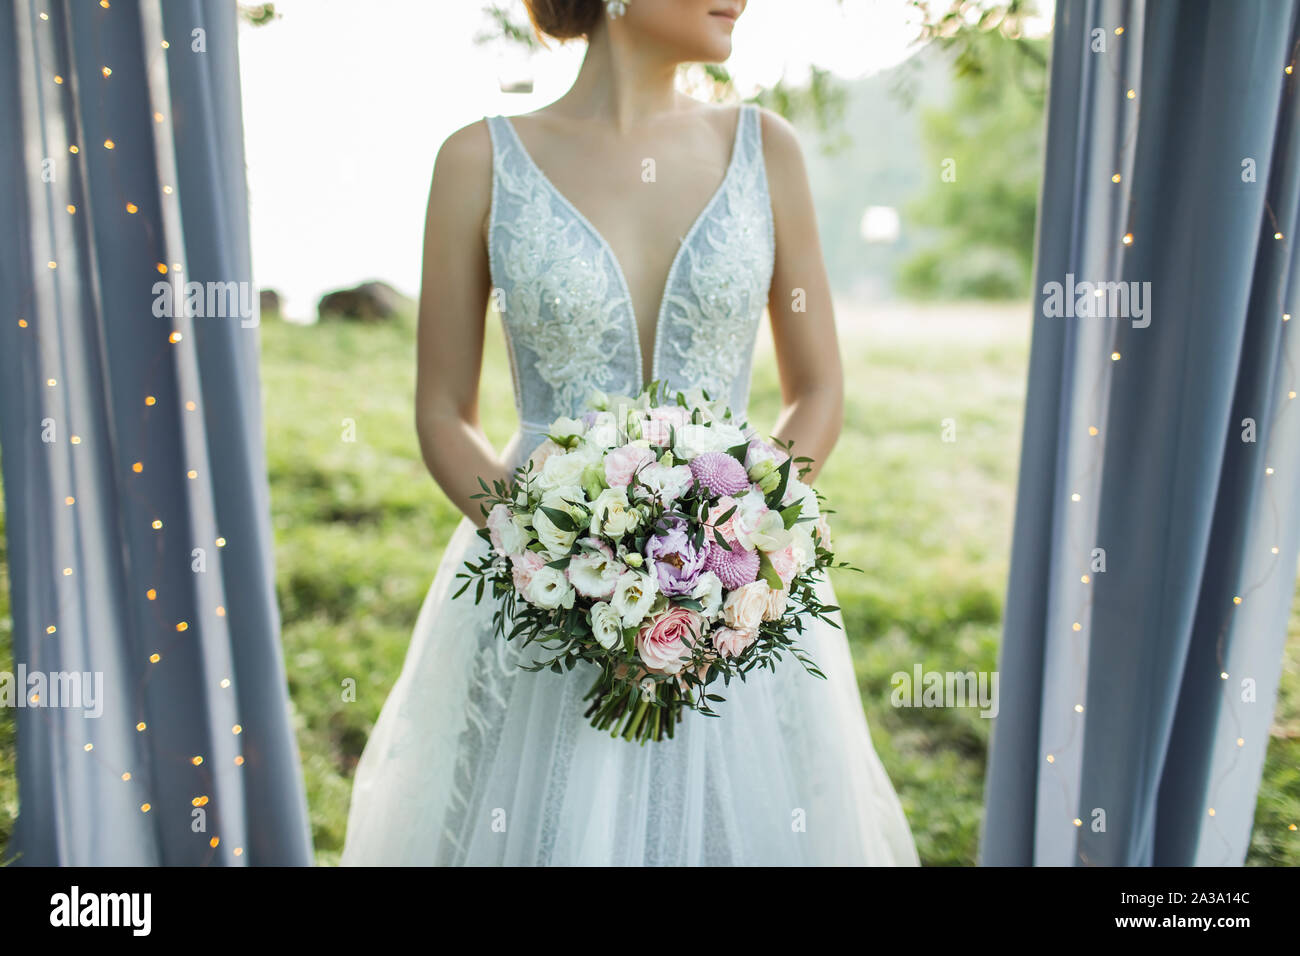 Bride Holding In Hands Small Wedding Bouquet In Pastel Colors